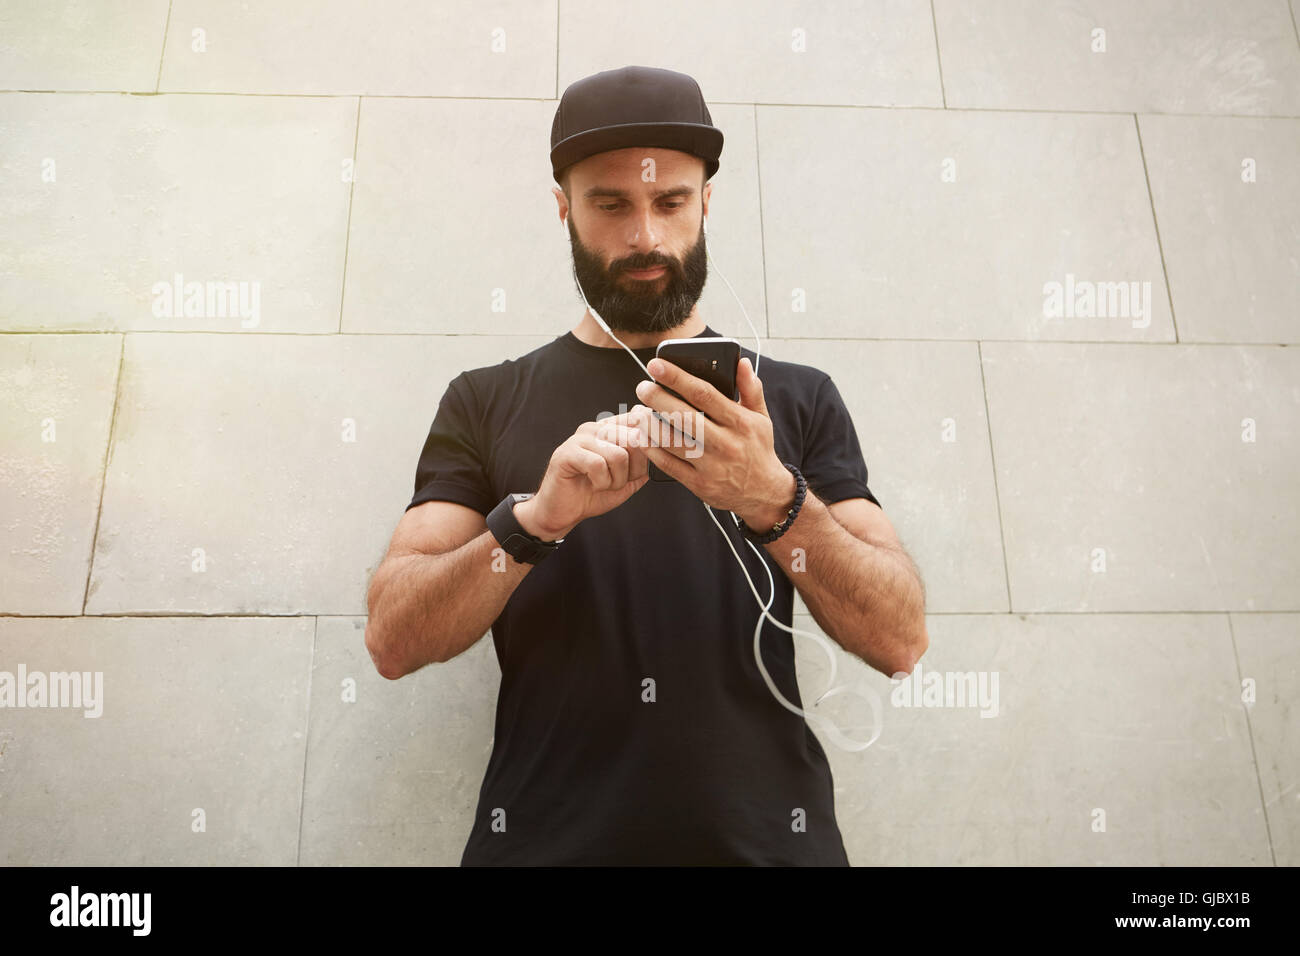 Bearded Muscular Man Wearing Black Tshirt Blank Snapback Cap Summer Time.Young Men Standing Opposite Empty Gray - Stock Image